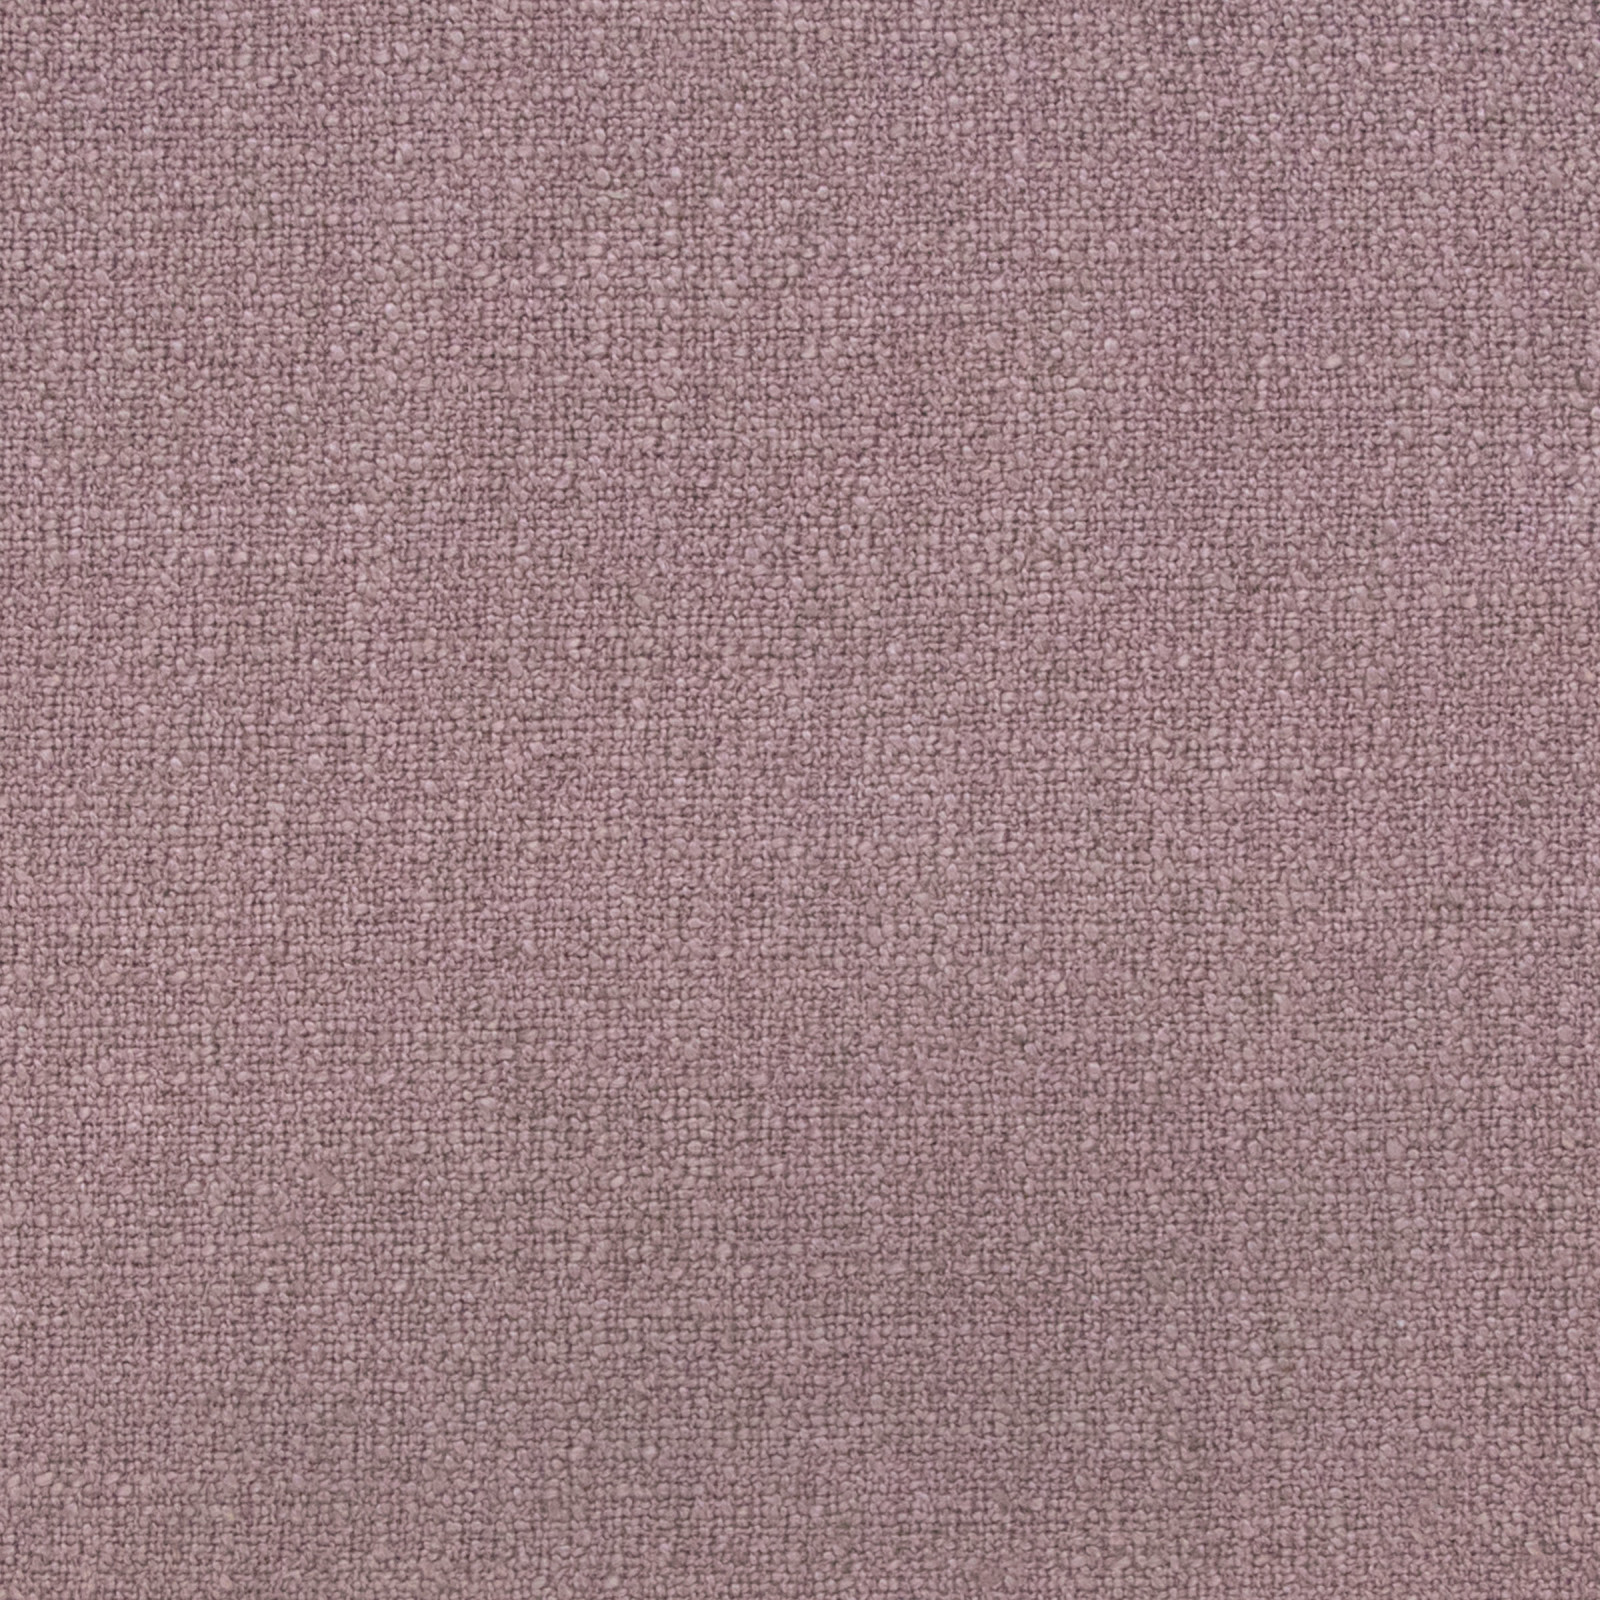 B9167 Dusty Mauve Greenhouse Fabrics